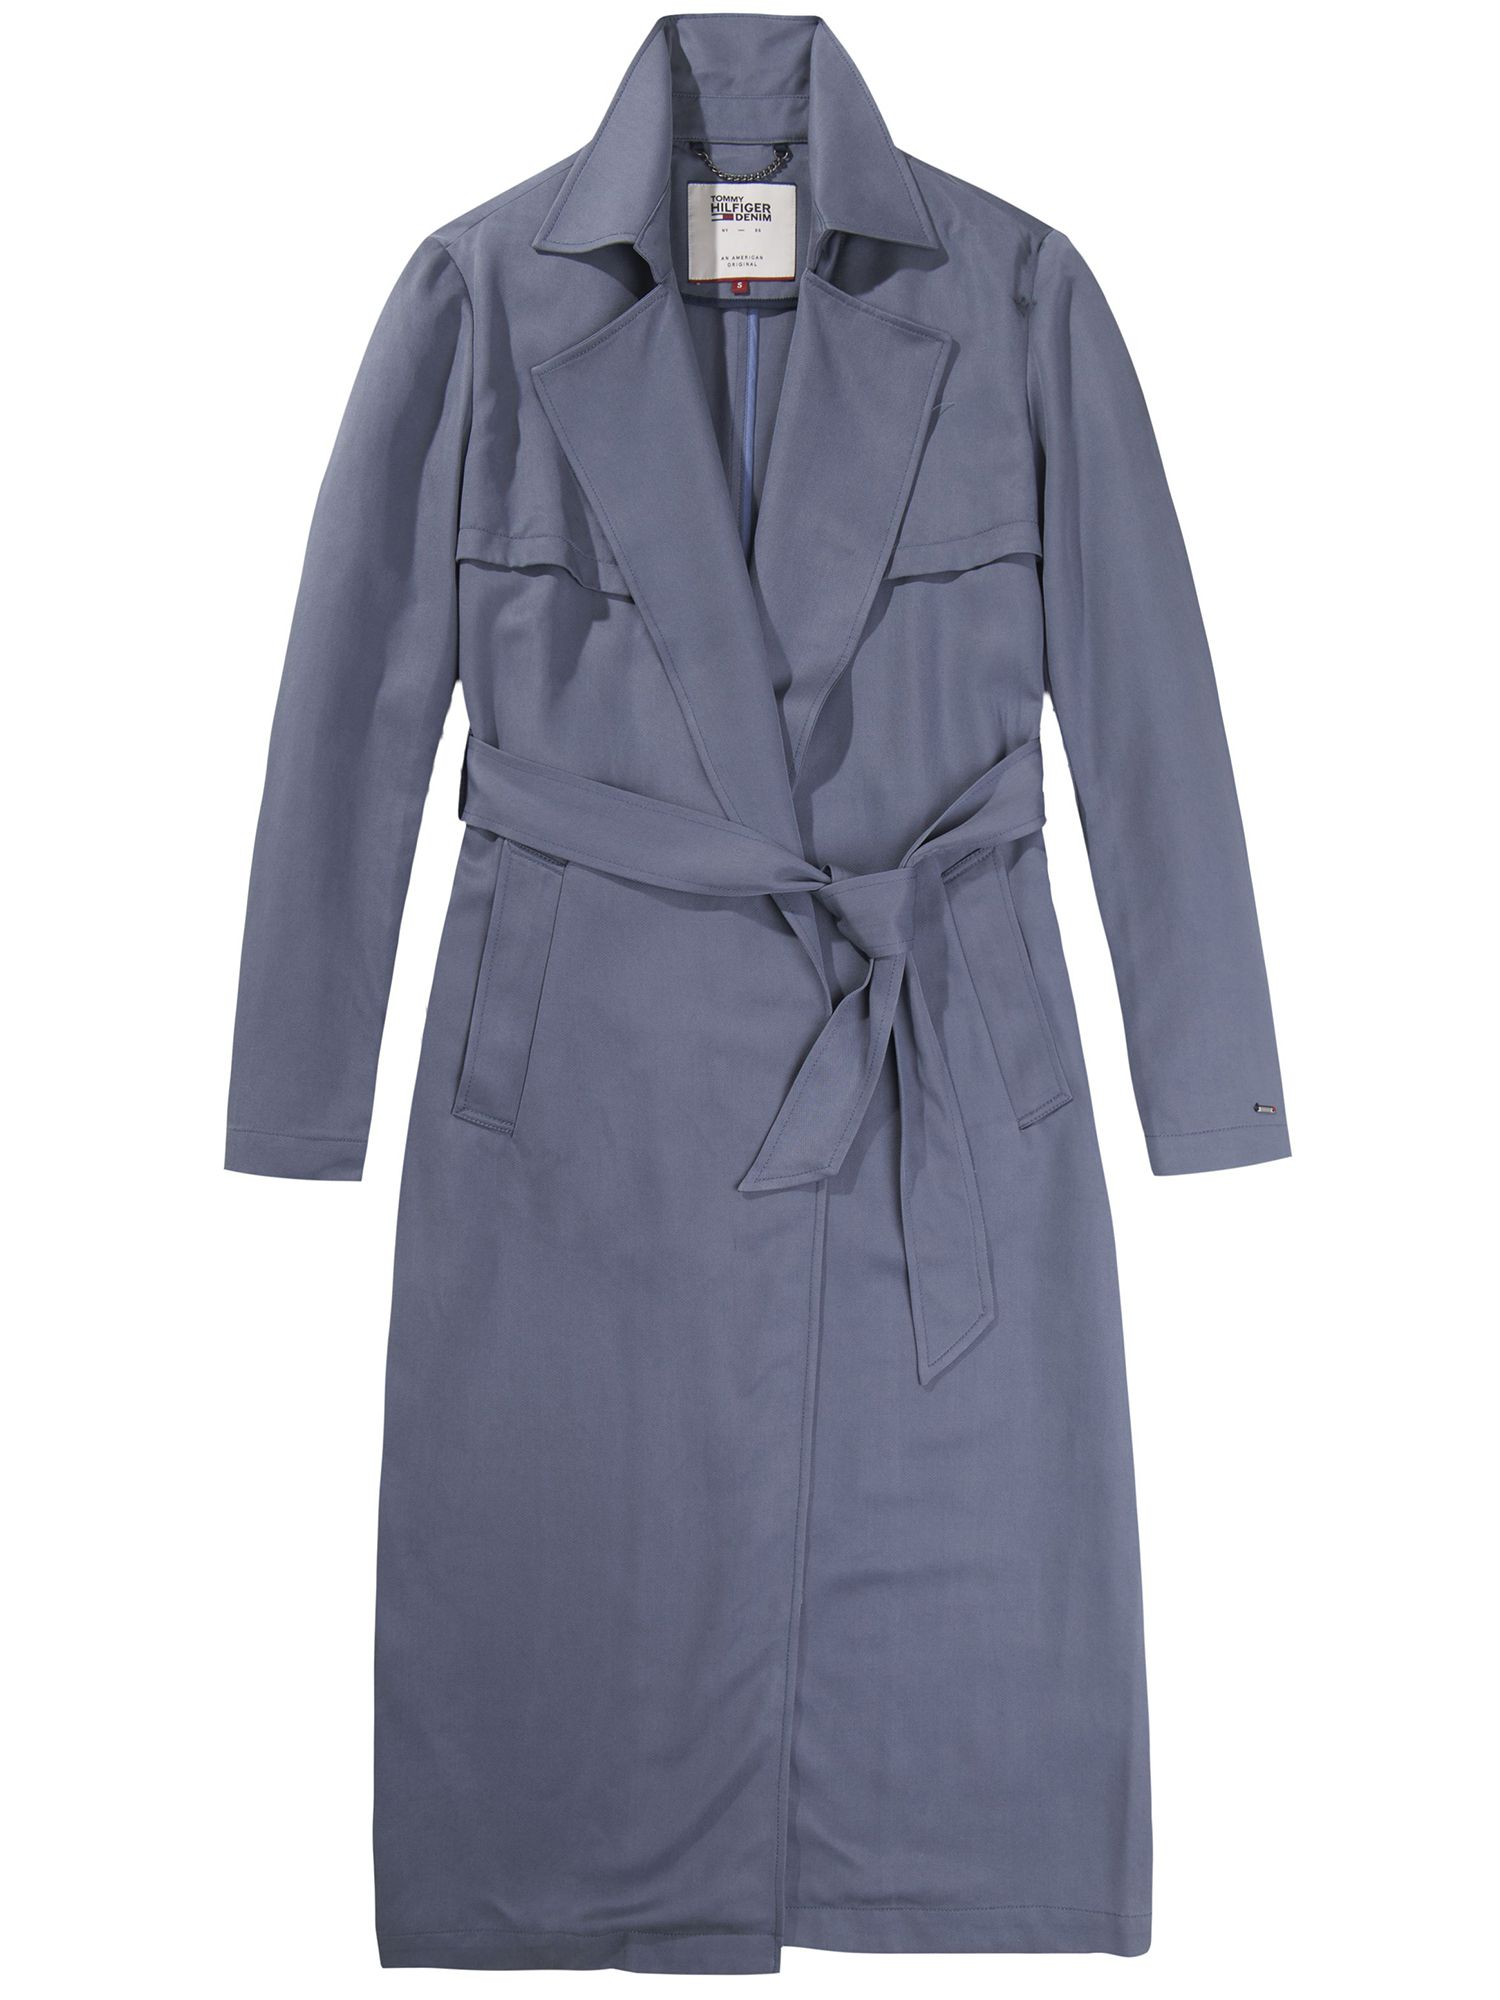 Tommy Hilfiger Fluid Trench Coat, Grey